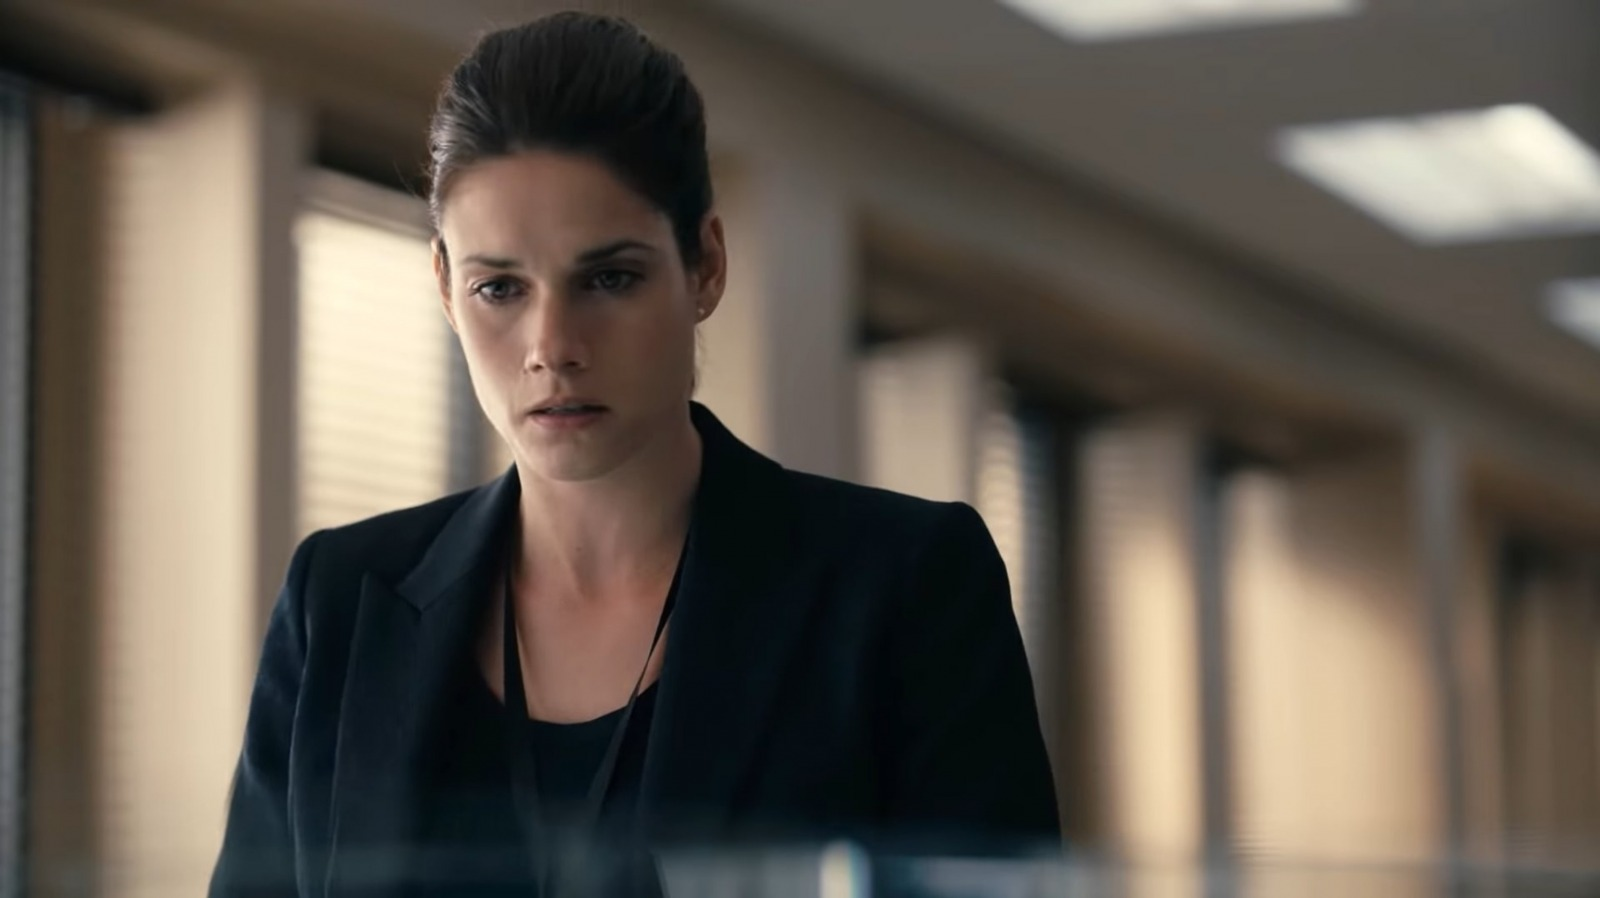 The Reason Fbi Fans Think Missy Peregrym Is Leaving